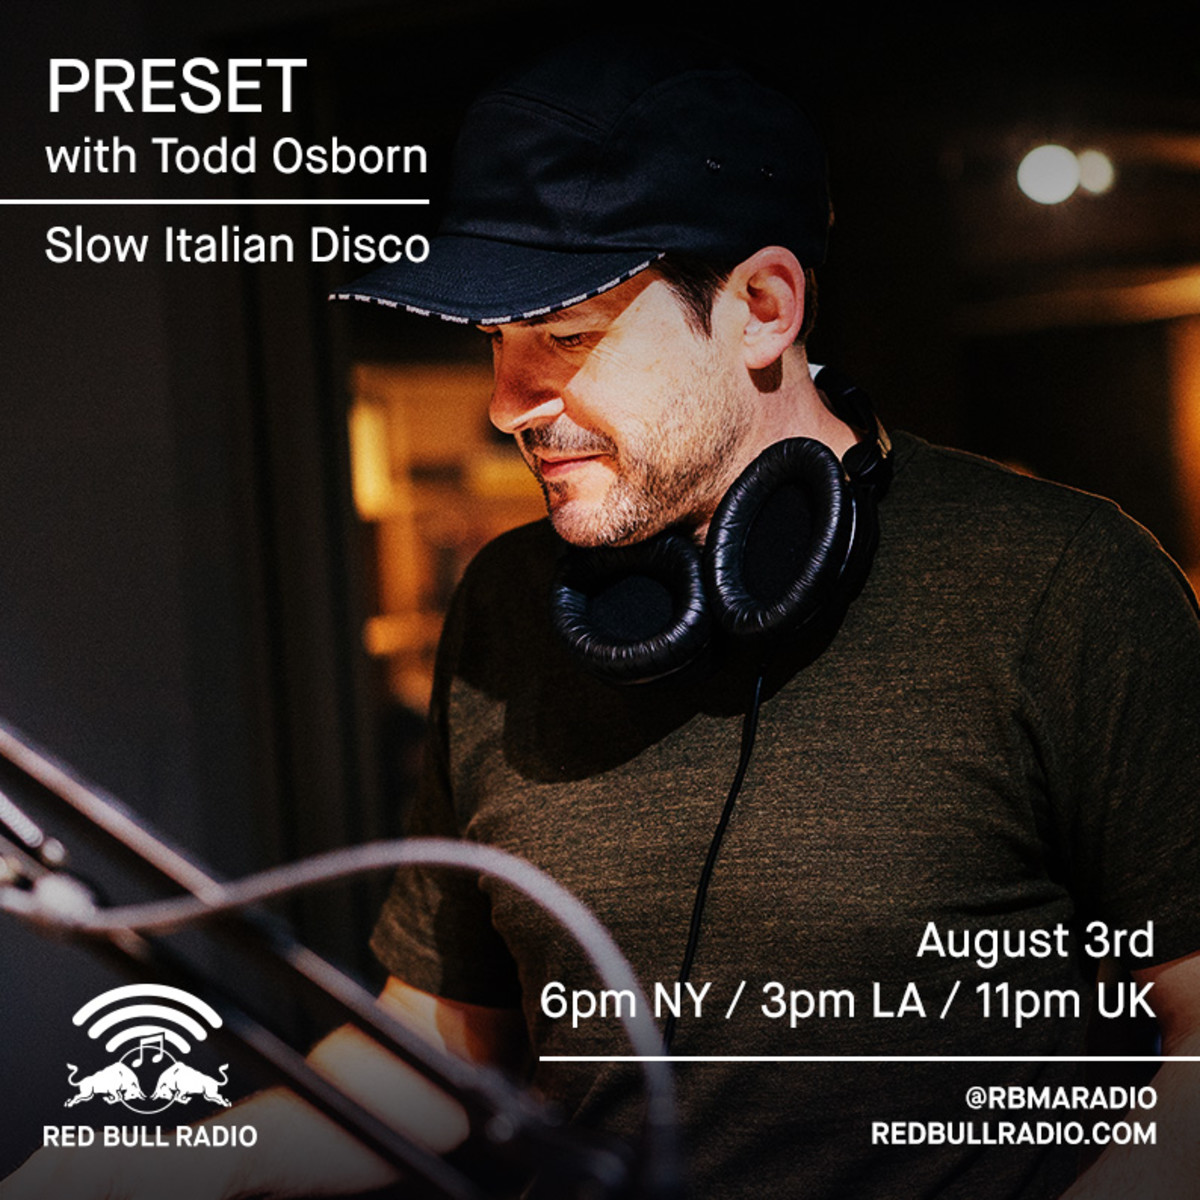 July_27_Preset_SlowItlianDisco